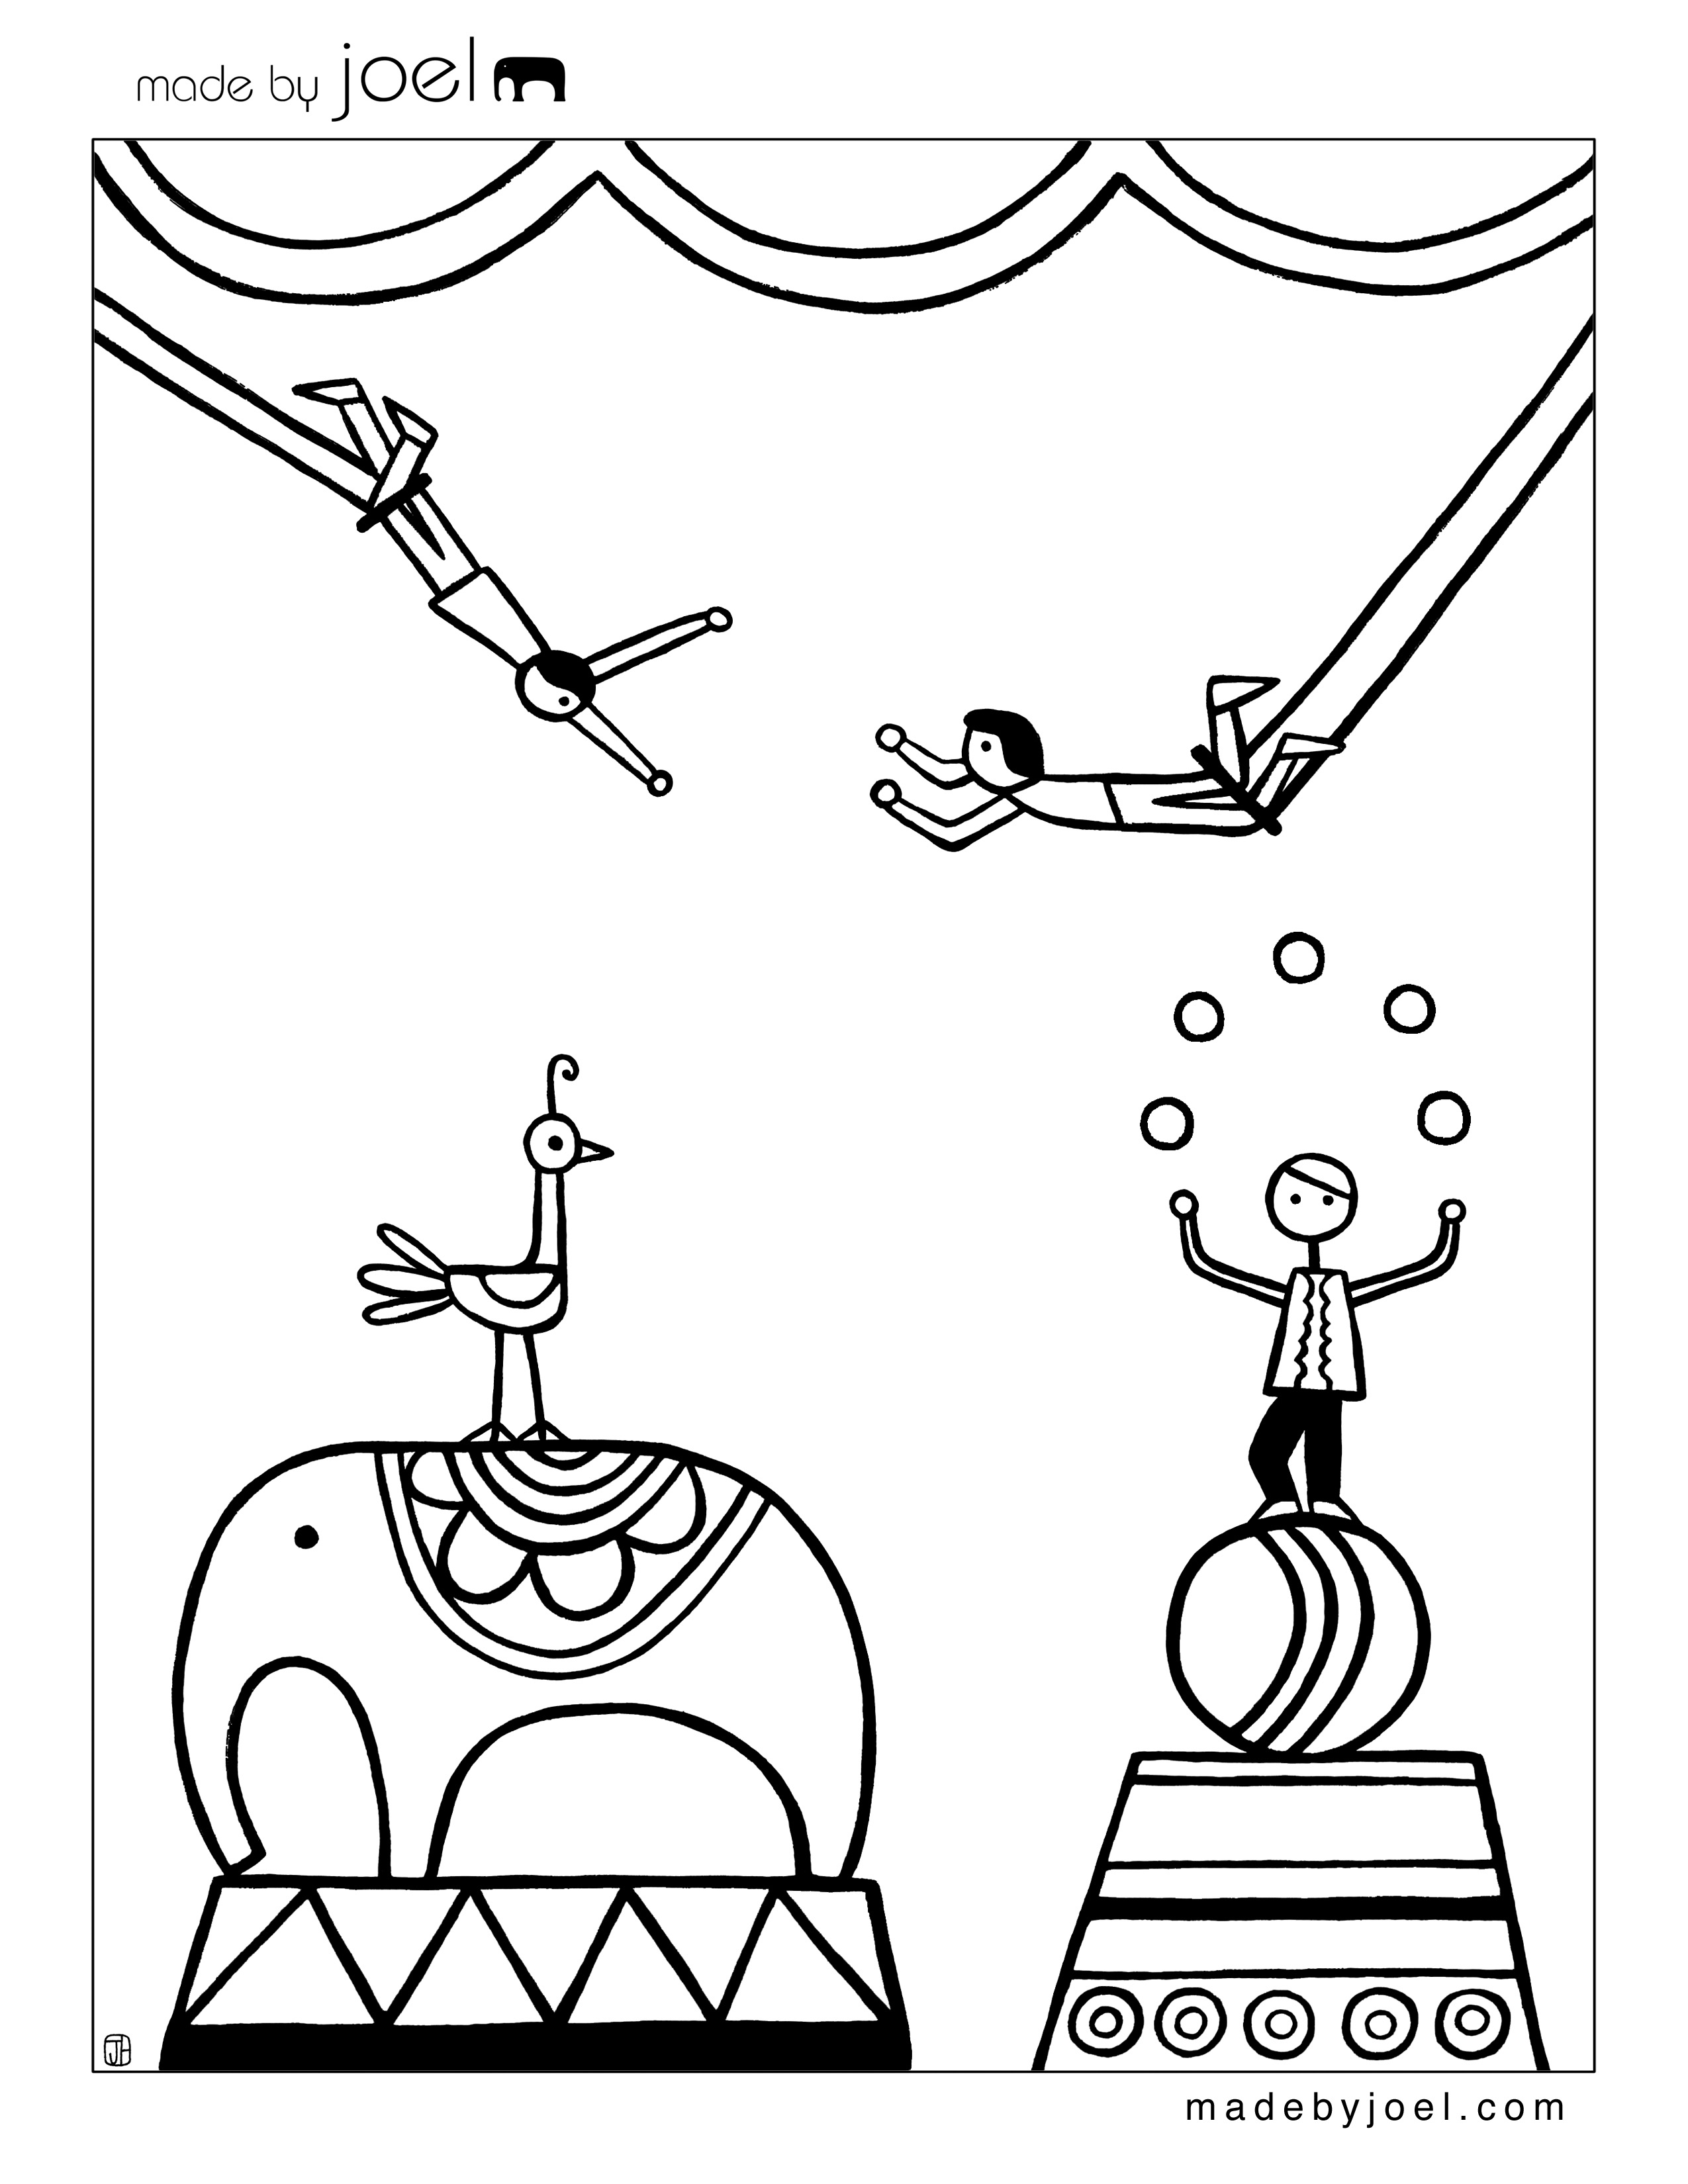 25+ Brilliant Image of Circus Coloring Pages